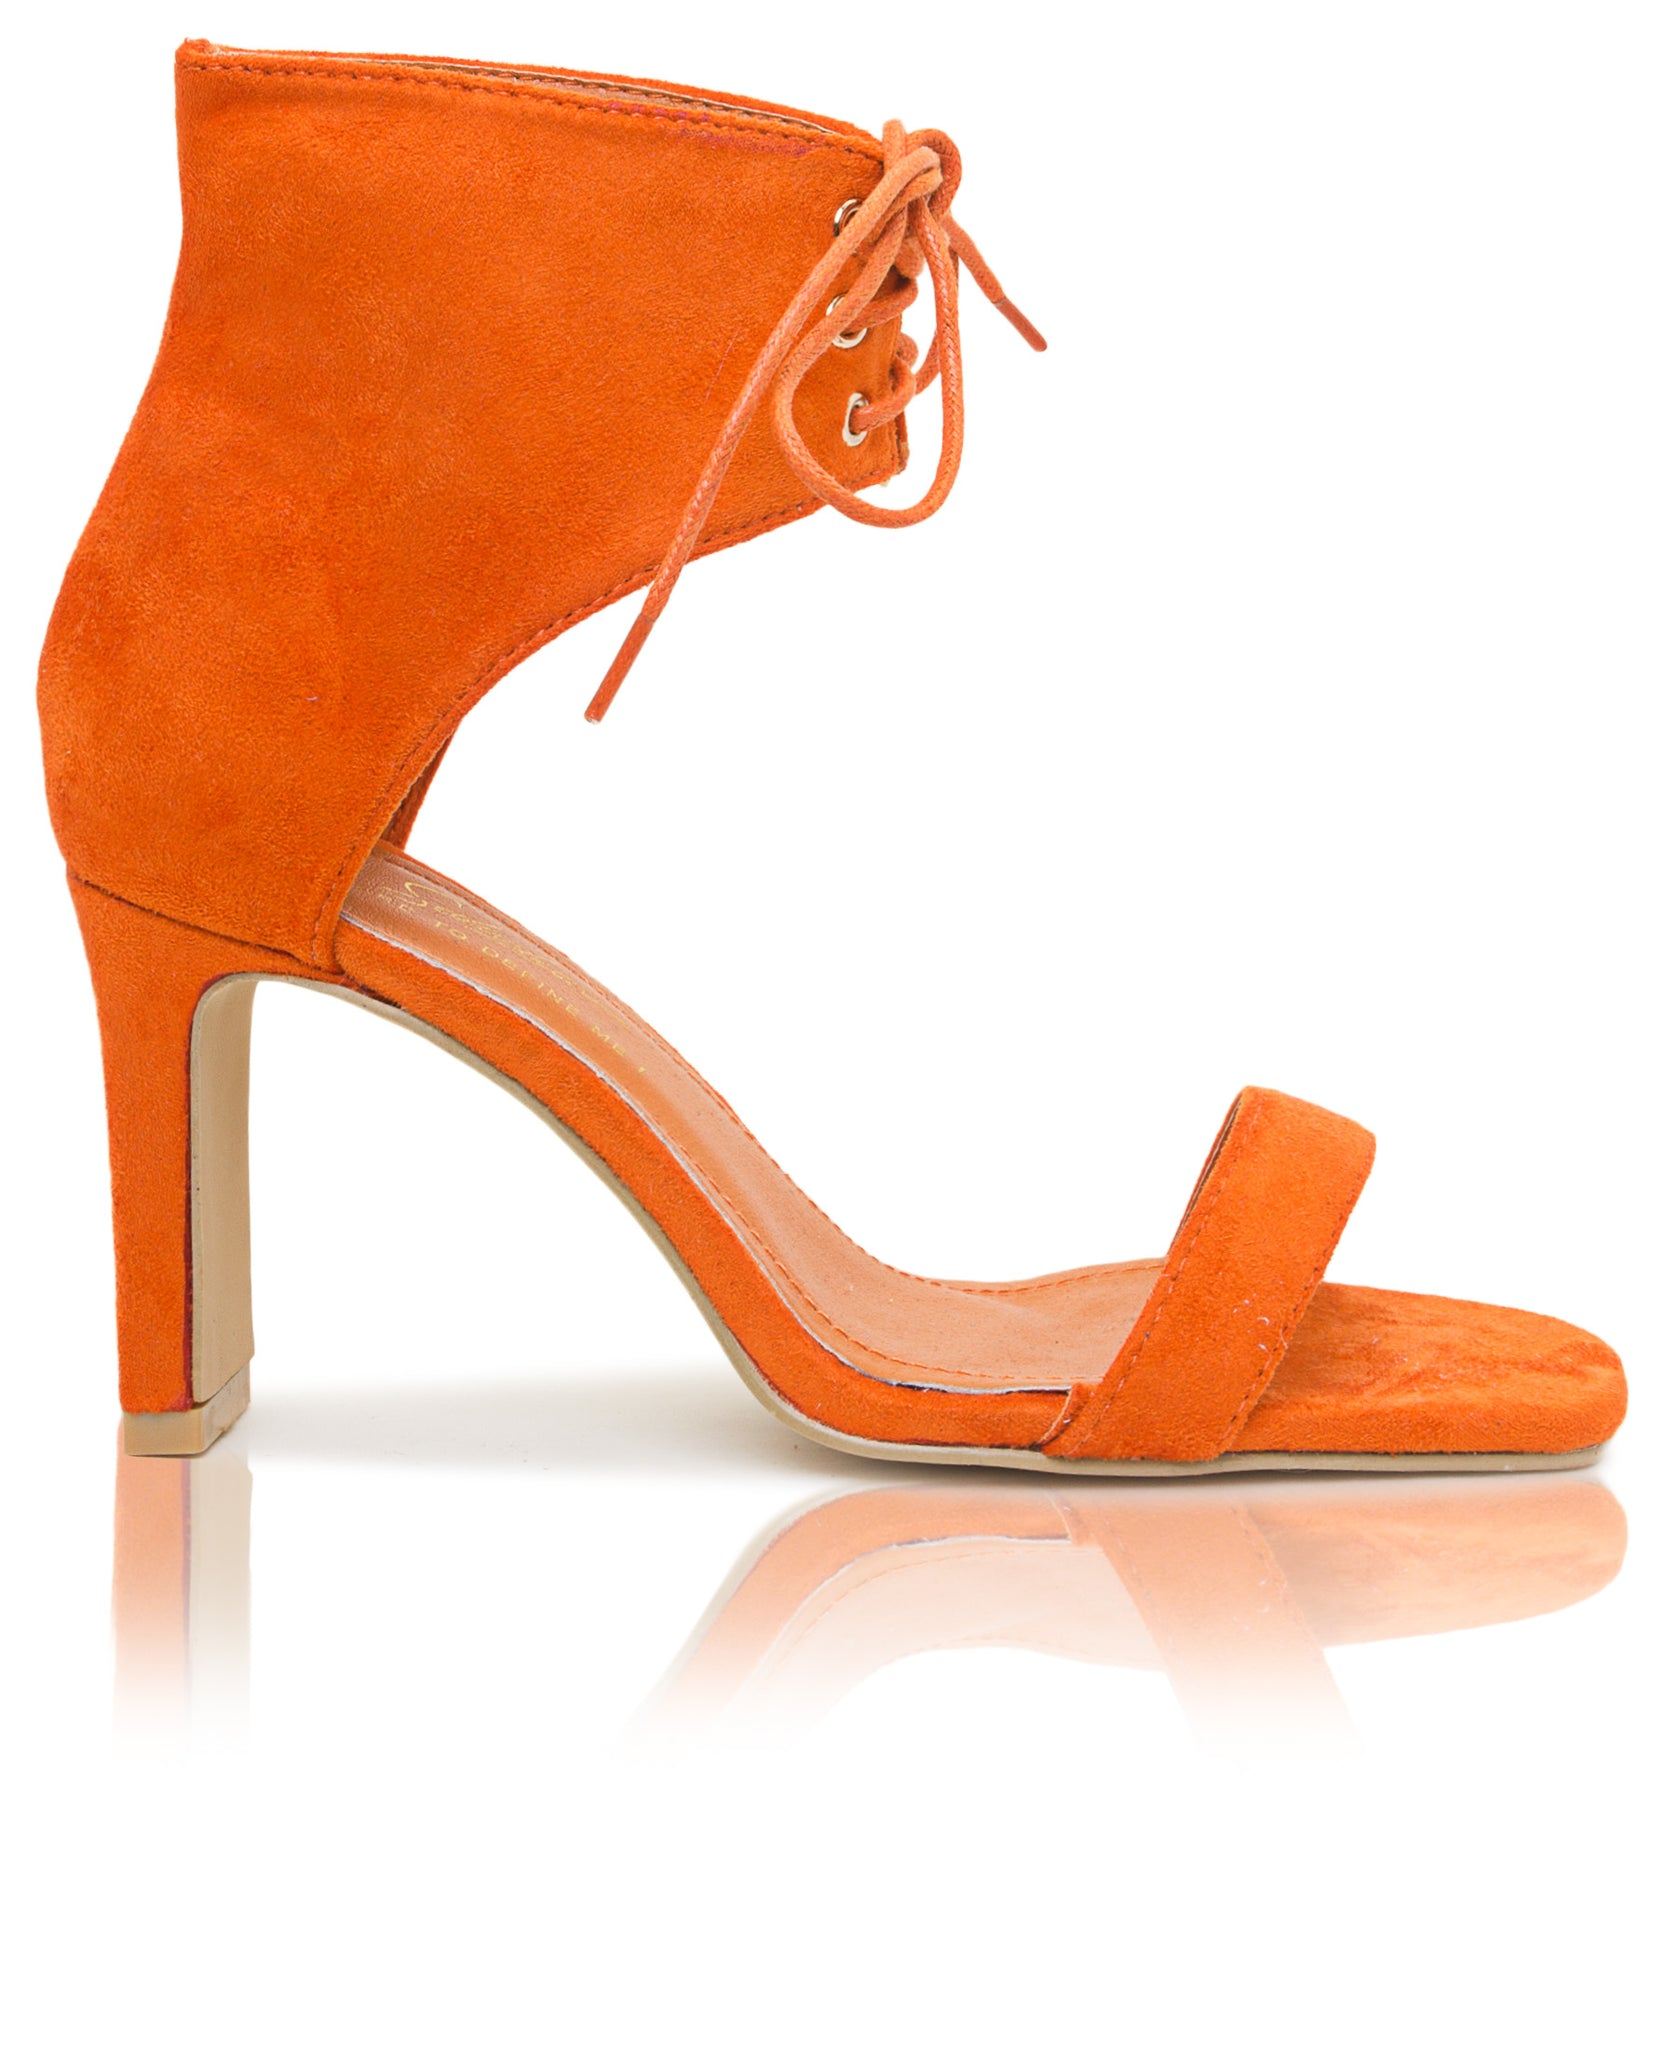 Lace Up Heels - Orange